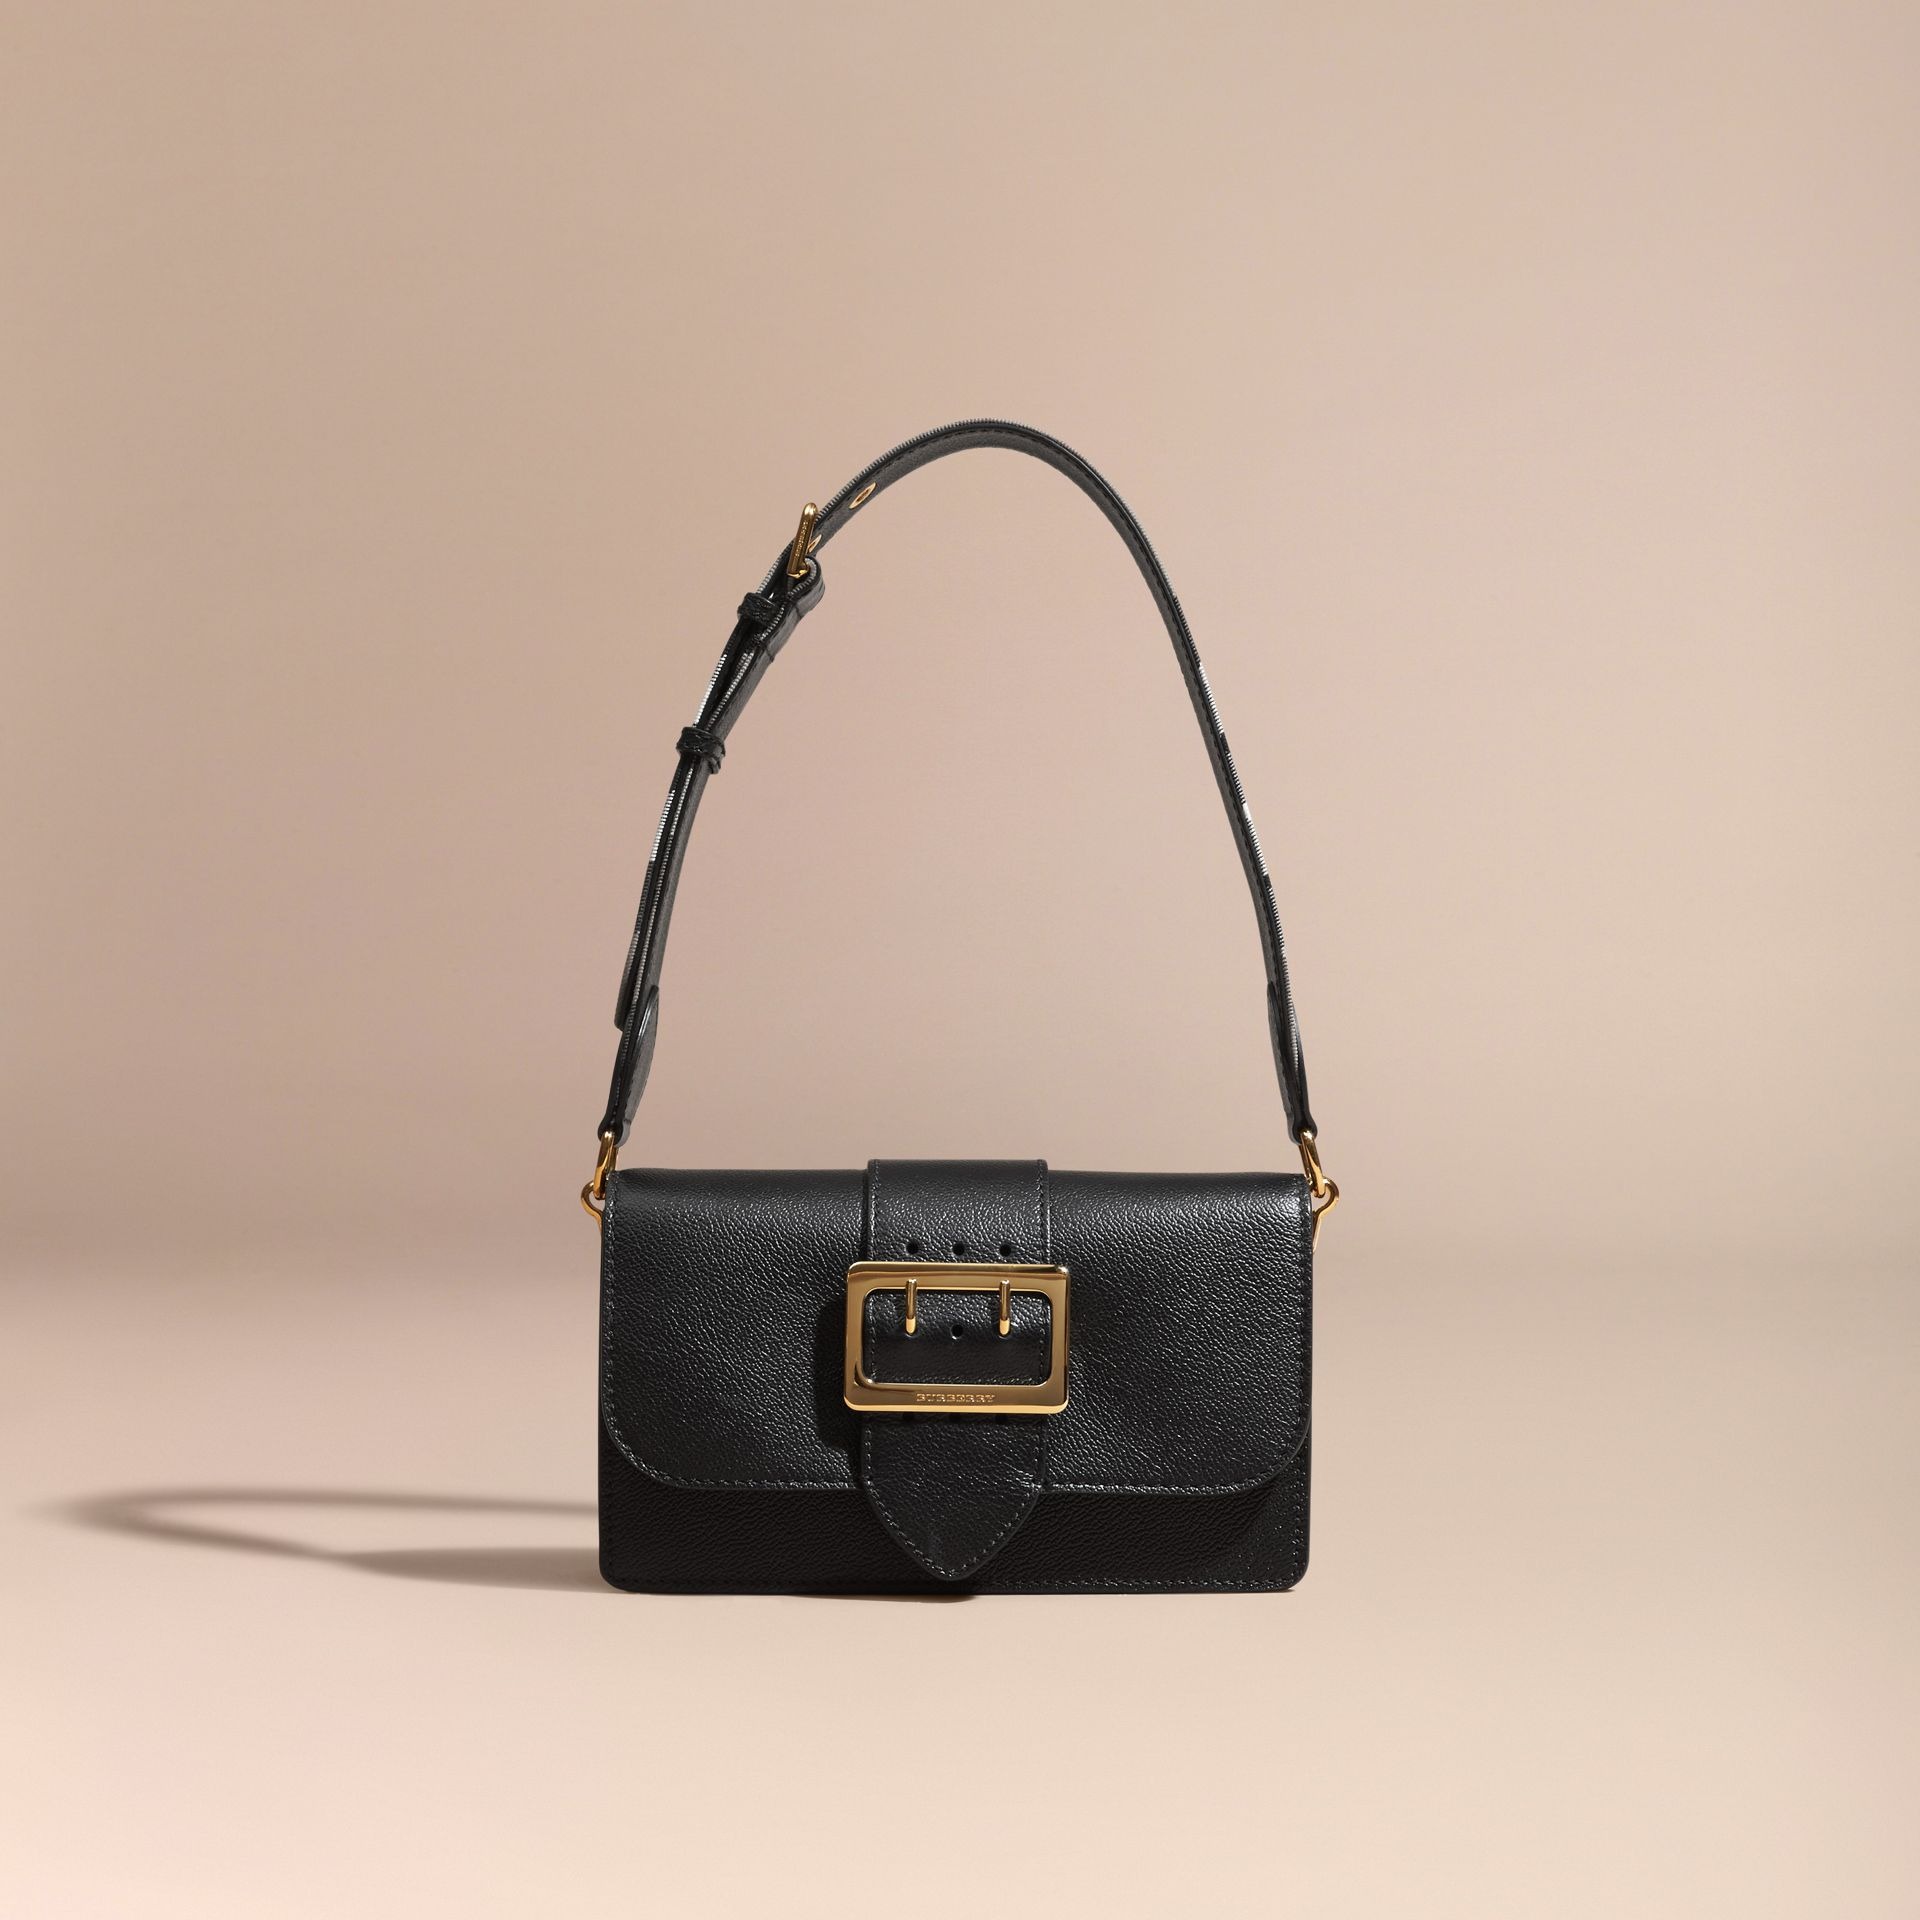 Noir Petit sac The Buckle en cuir - photo de la galerie 9